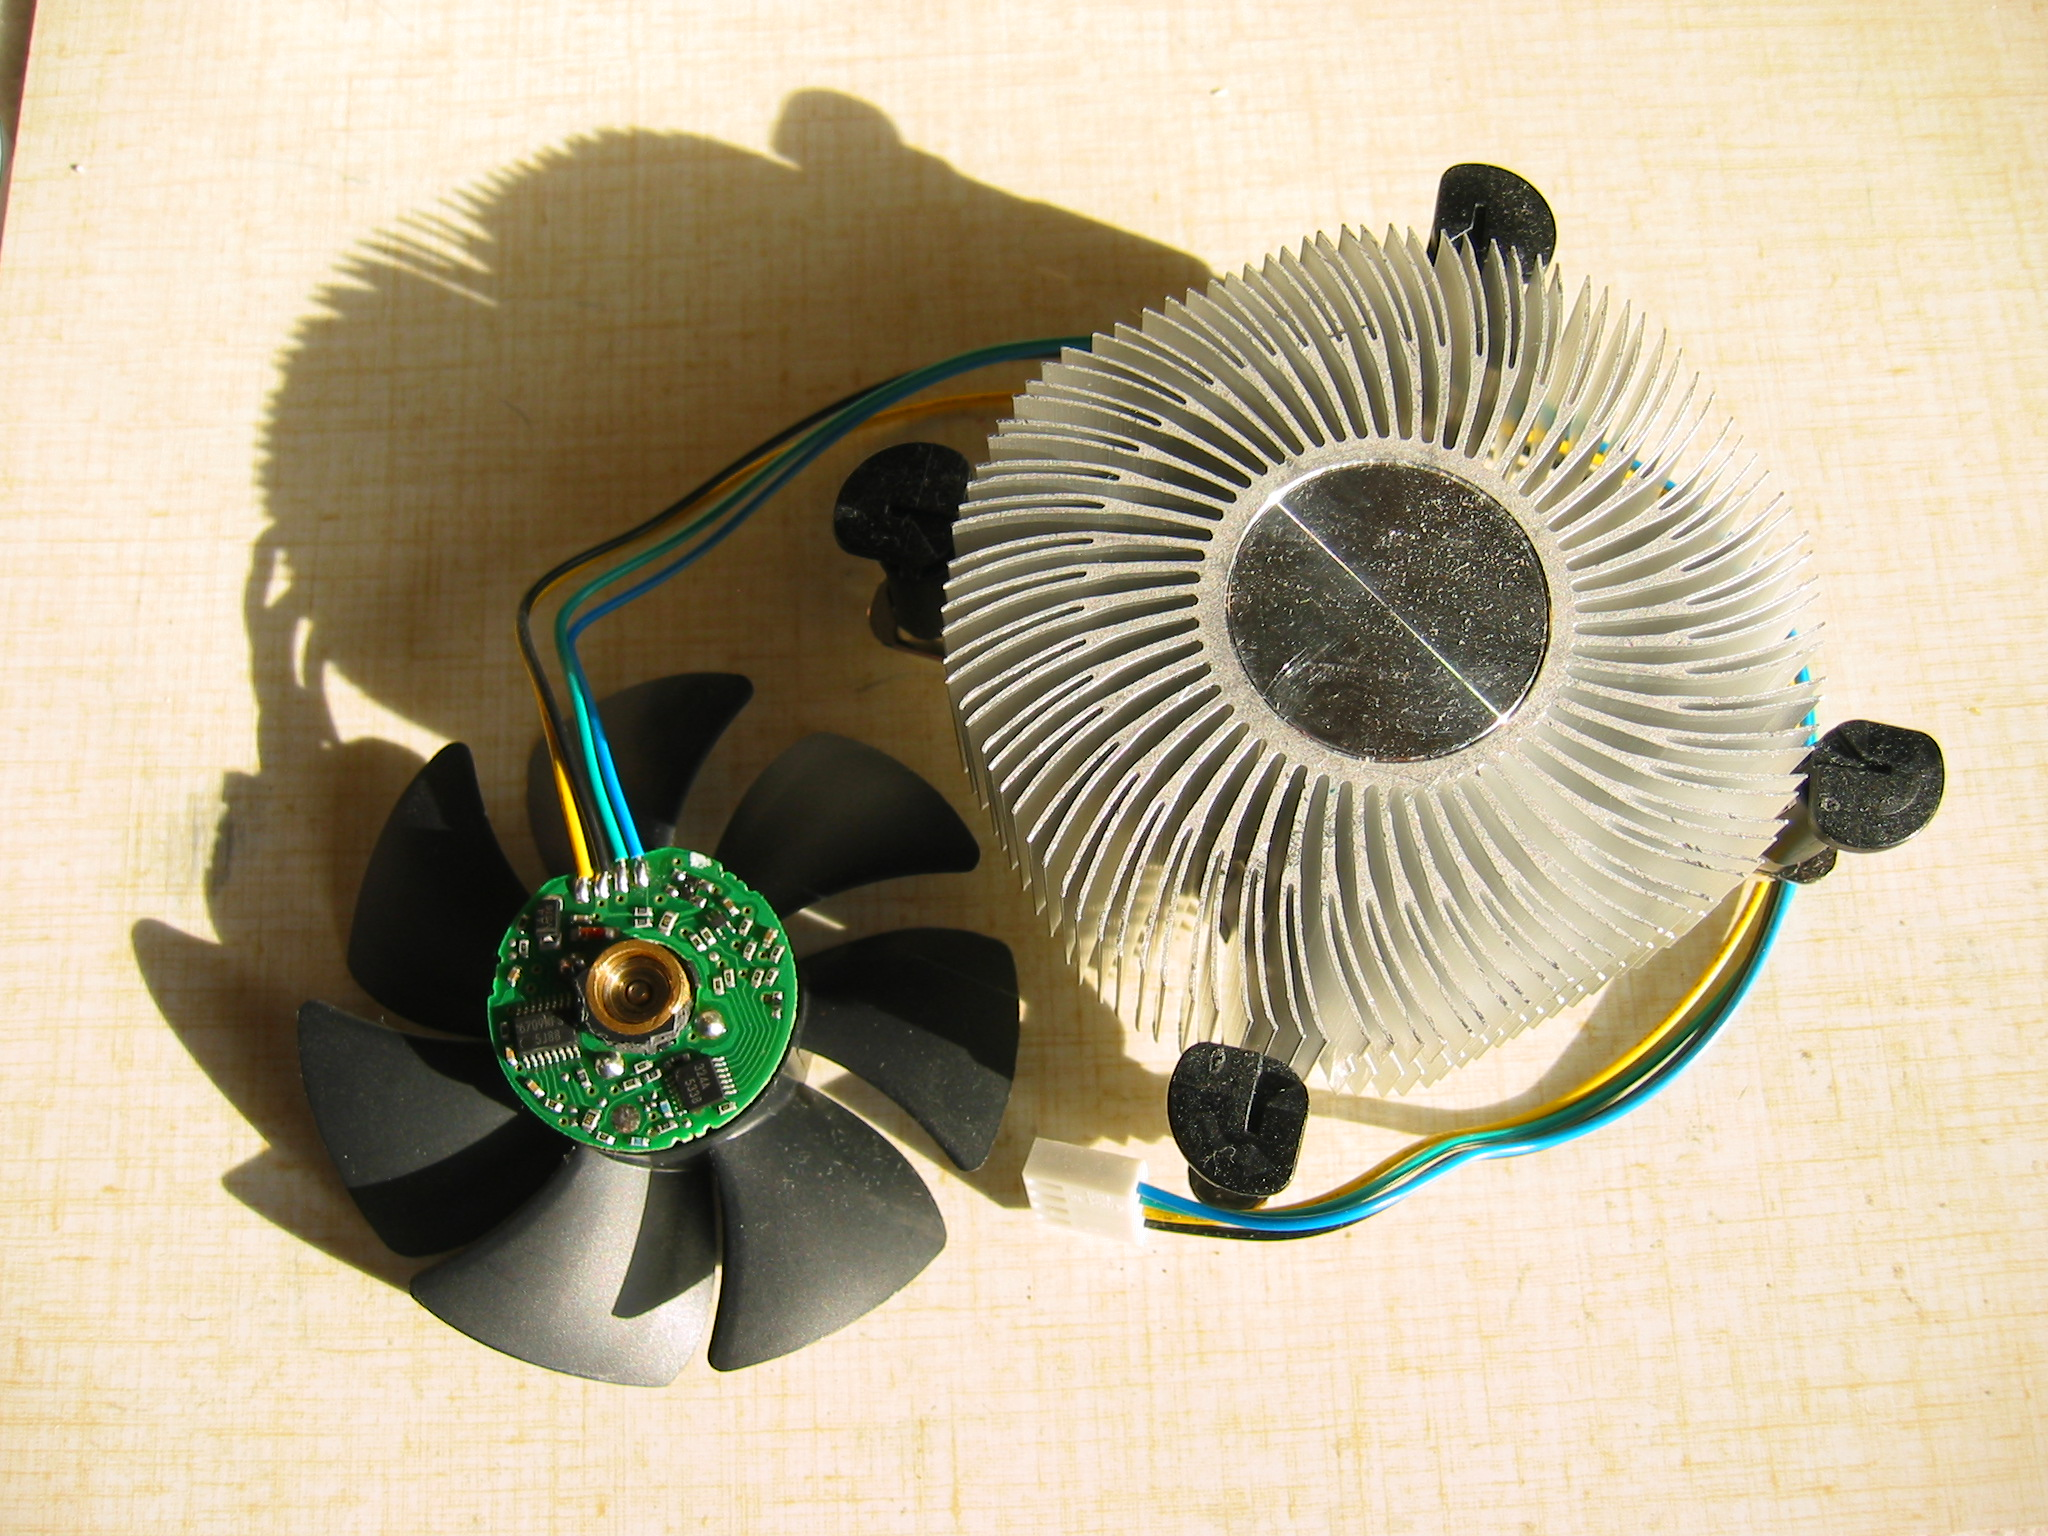 4 Wire Fans Box Fan Wiring Diagram With Heatsink Photo3 Nidec